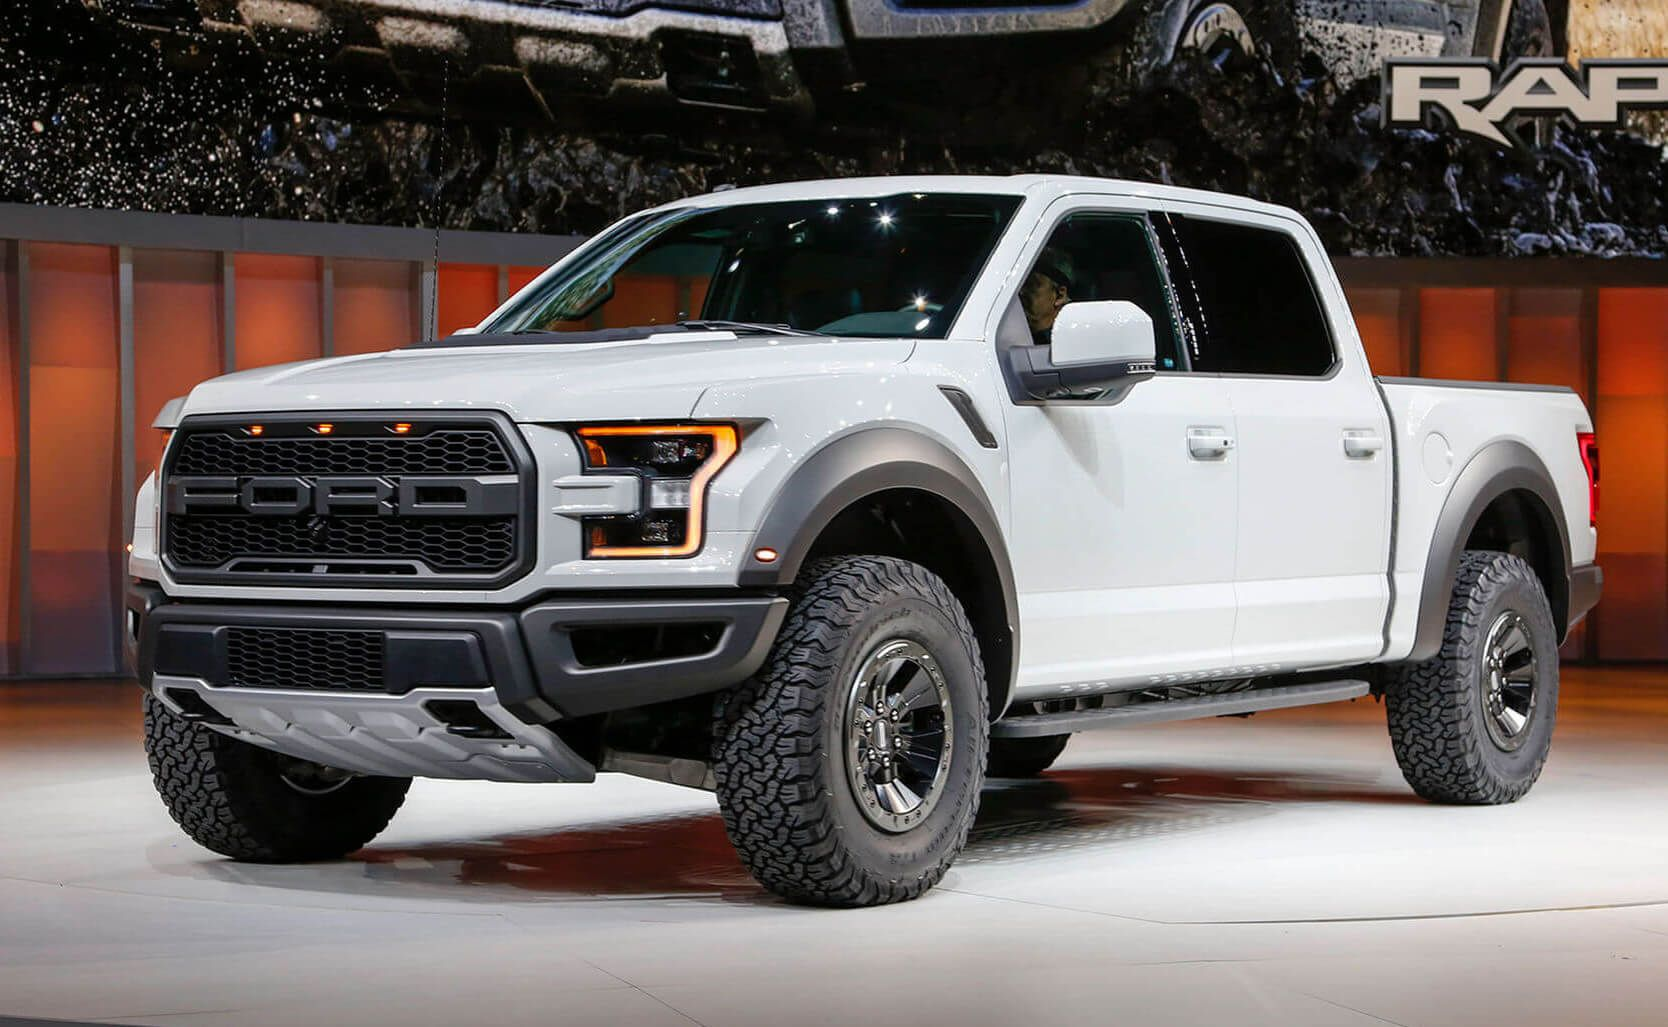 Off Road With Images Ford Raptor Ford F150 Ford Raptor 2017